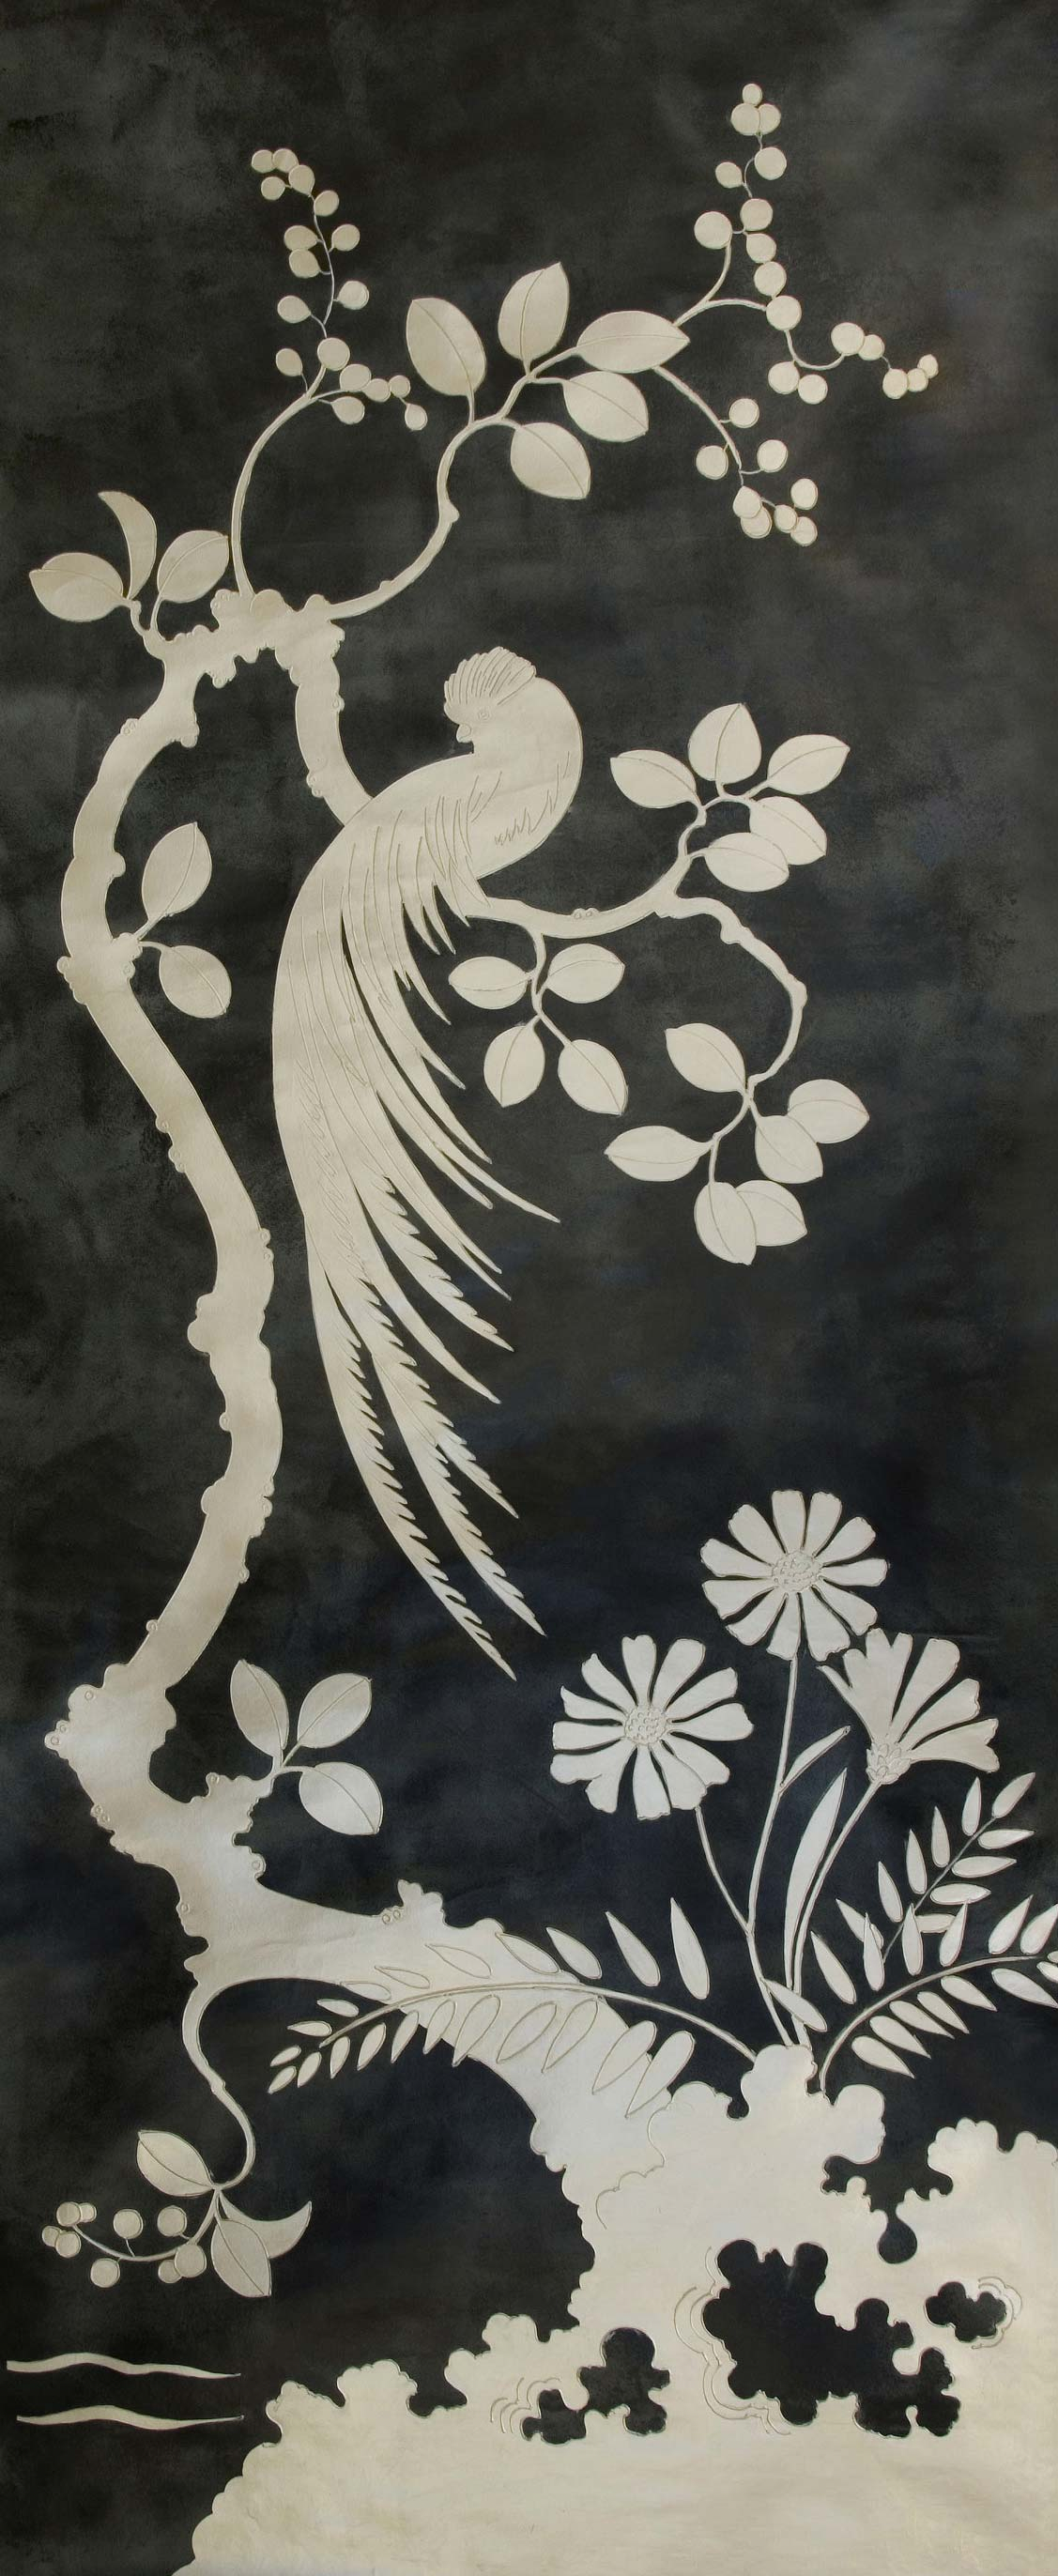 chinon-Fromental-chinoiserie-black-white-drd-wallpaper-wp5205173